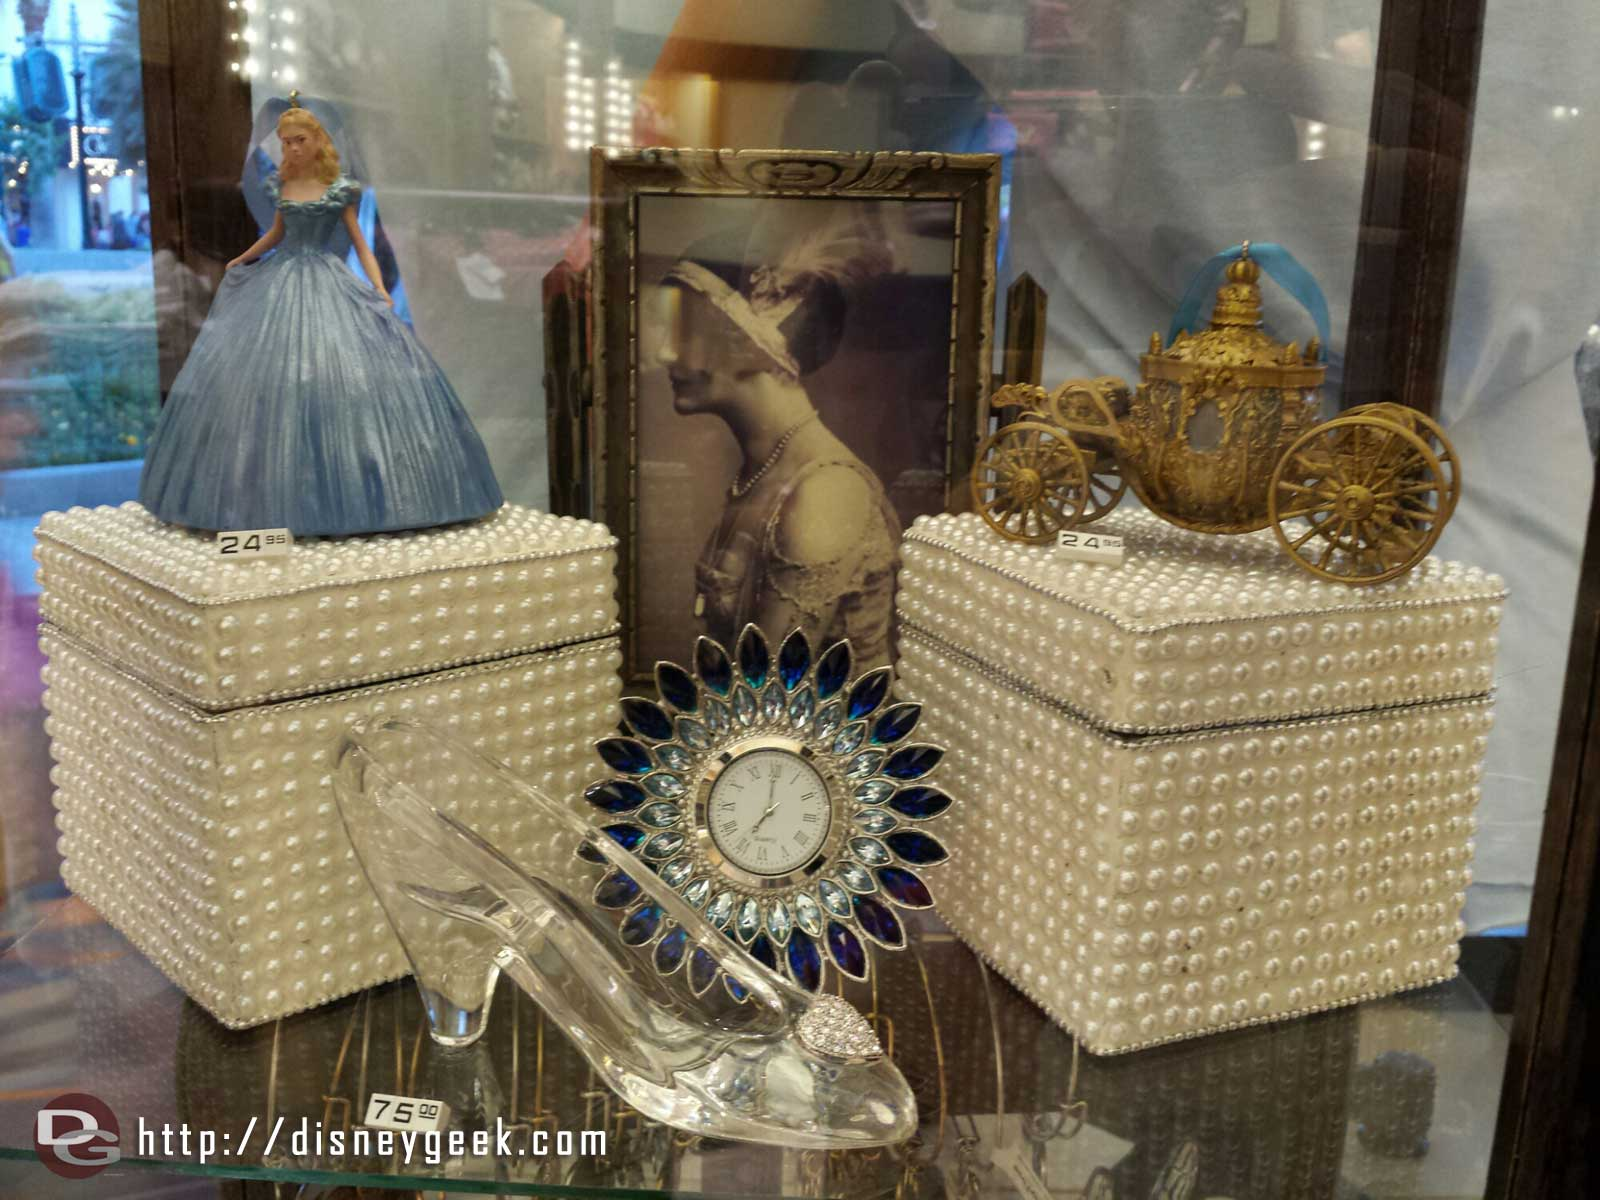 Elias & Co has a couple #Cinderella items